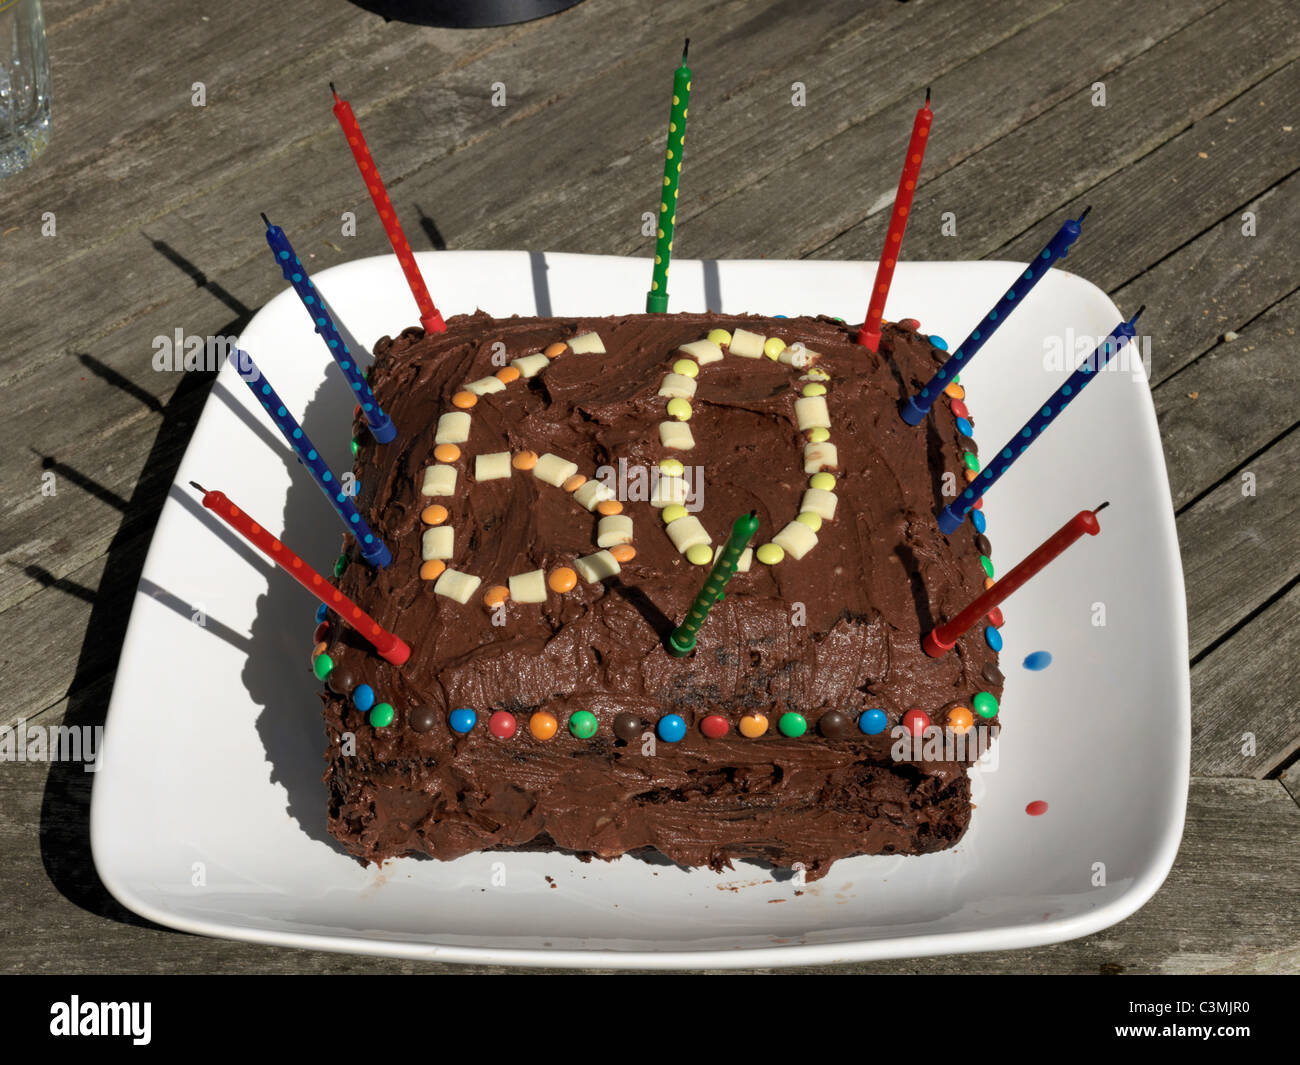 Chocolate 60th Birthday Cake With Candles